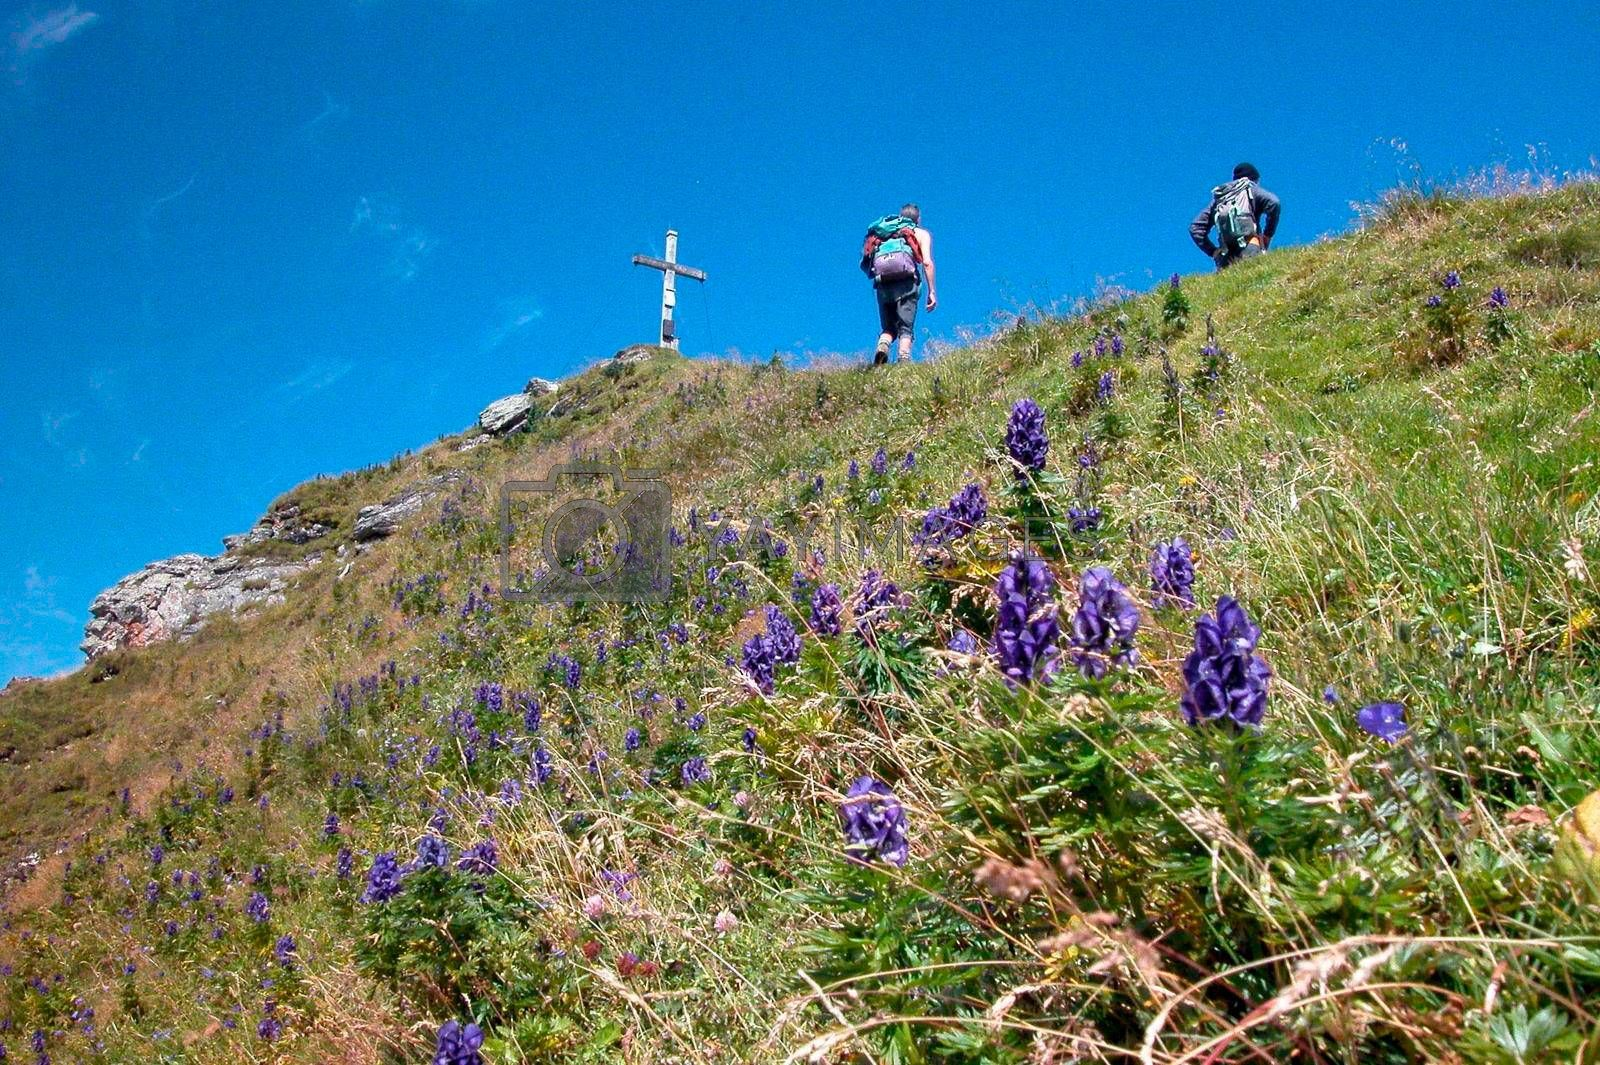 hiking at the mountain top in the alps, sports and outdoor activity